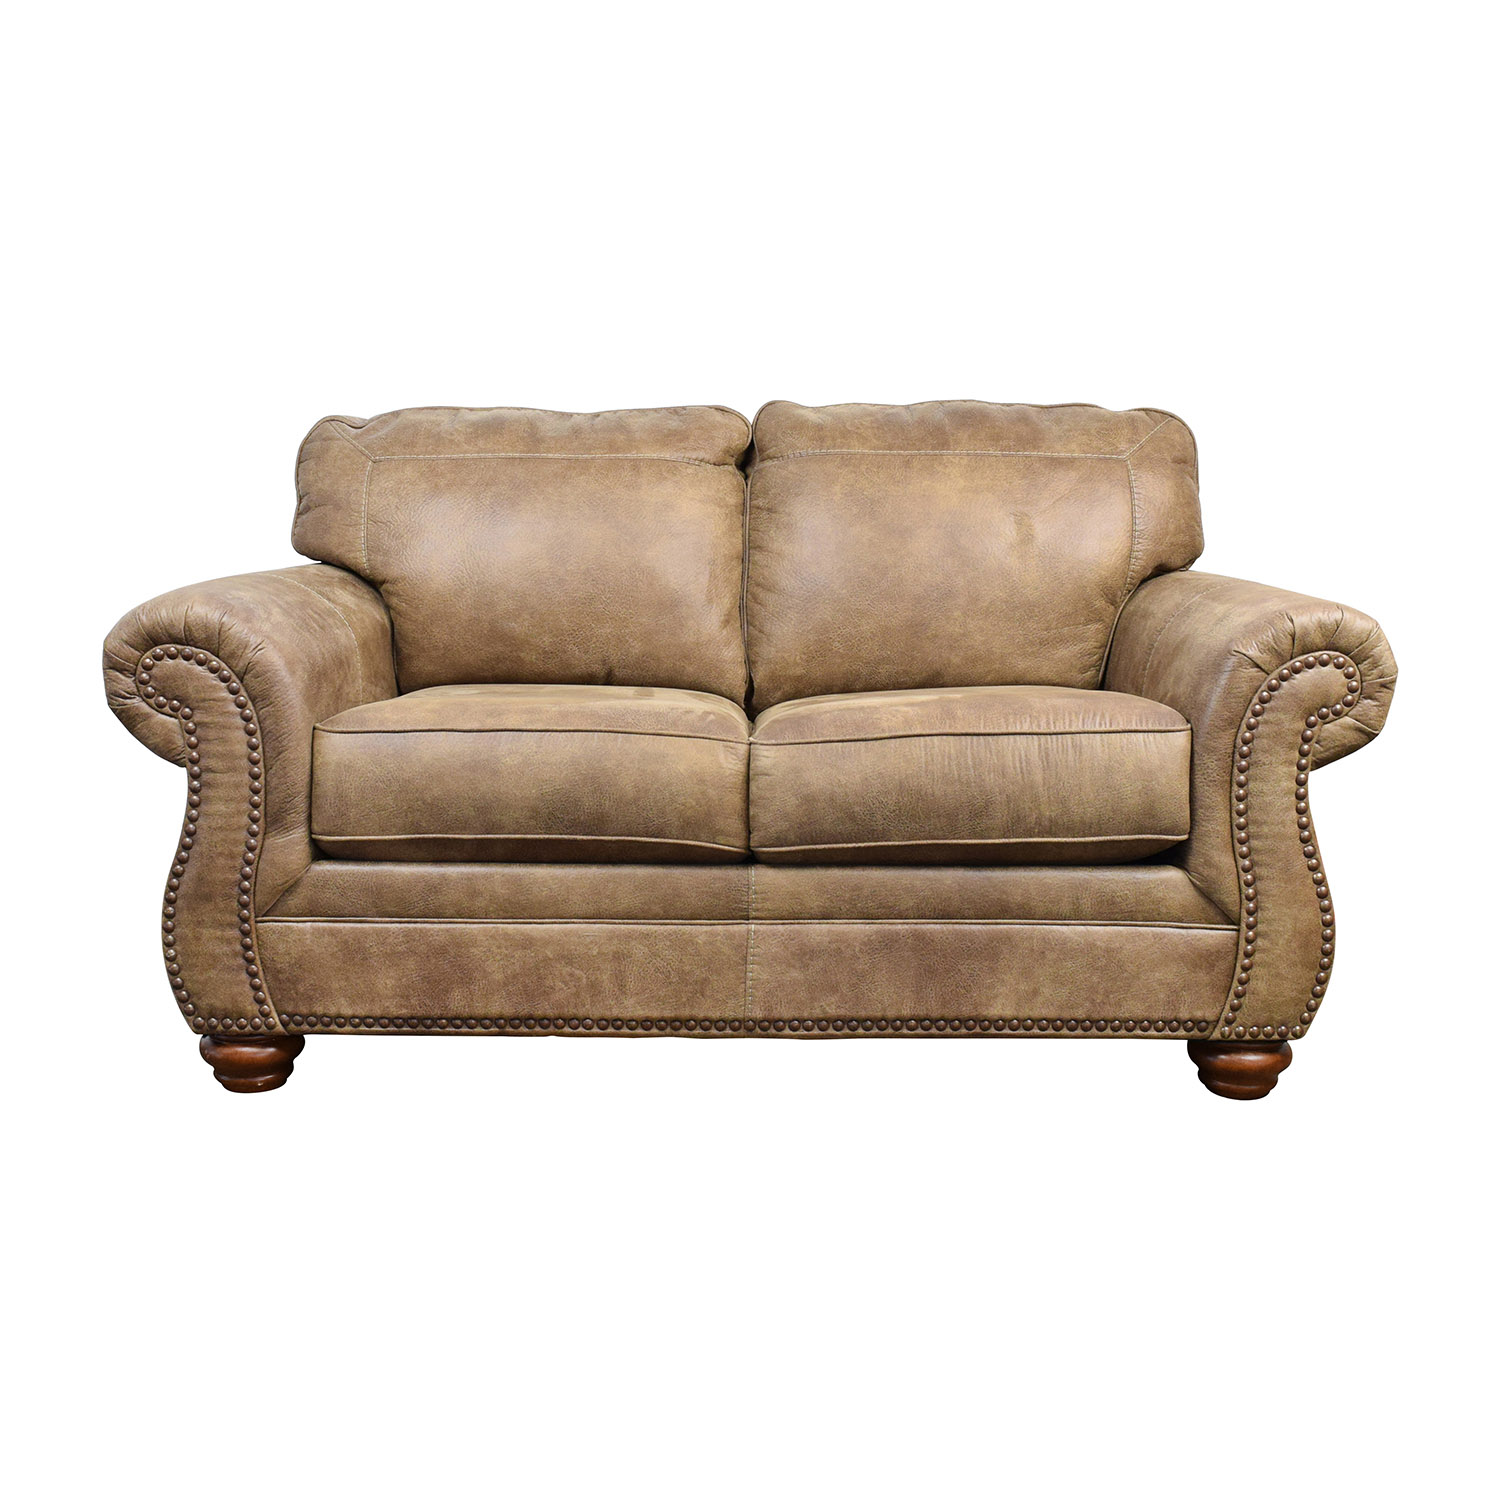 66% OFF Bob s Furniture Bob s Furniture Loveseat Sofas